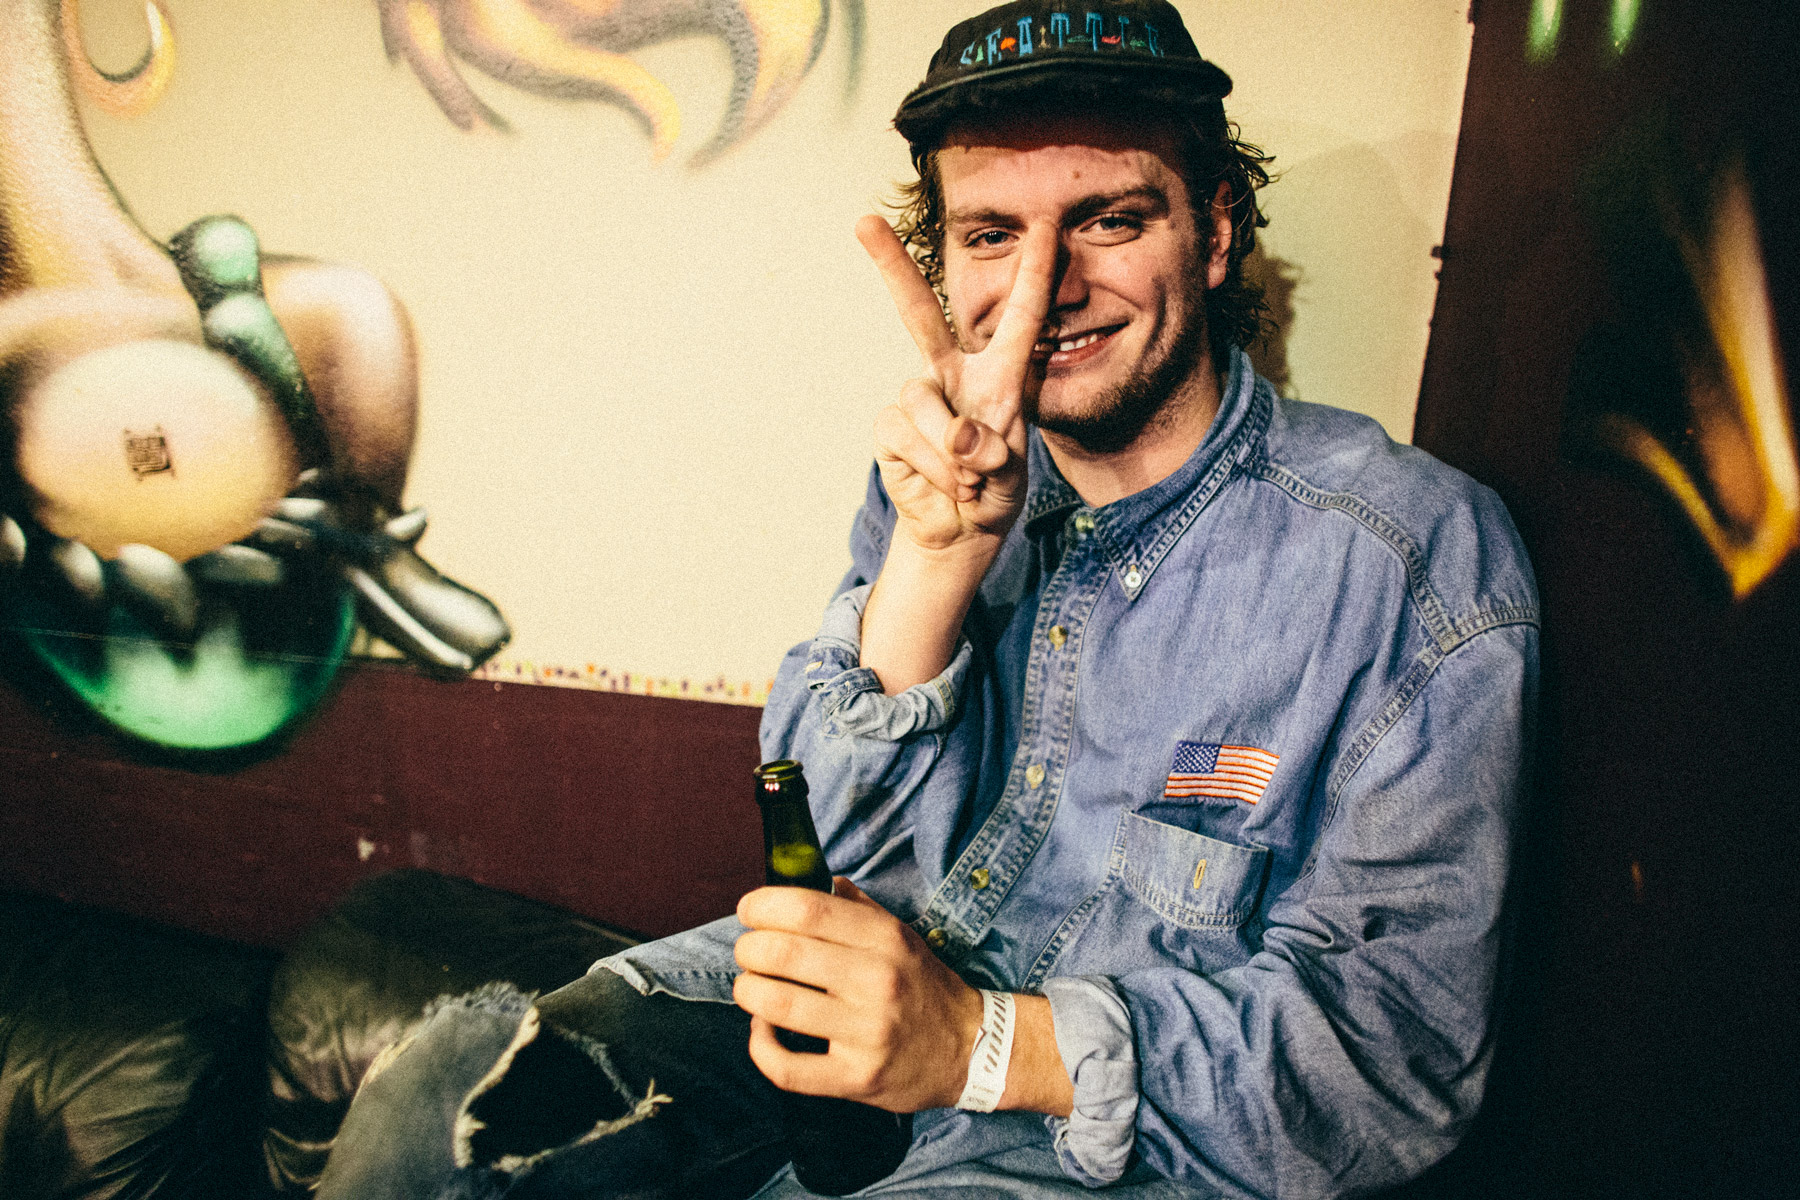 Arte Concert King Krule My Opinion Mac Demarco